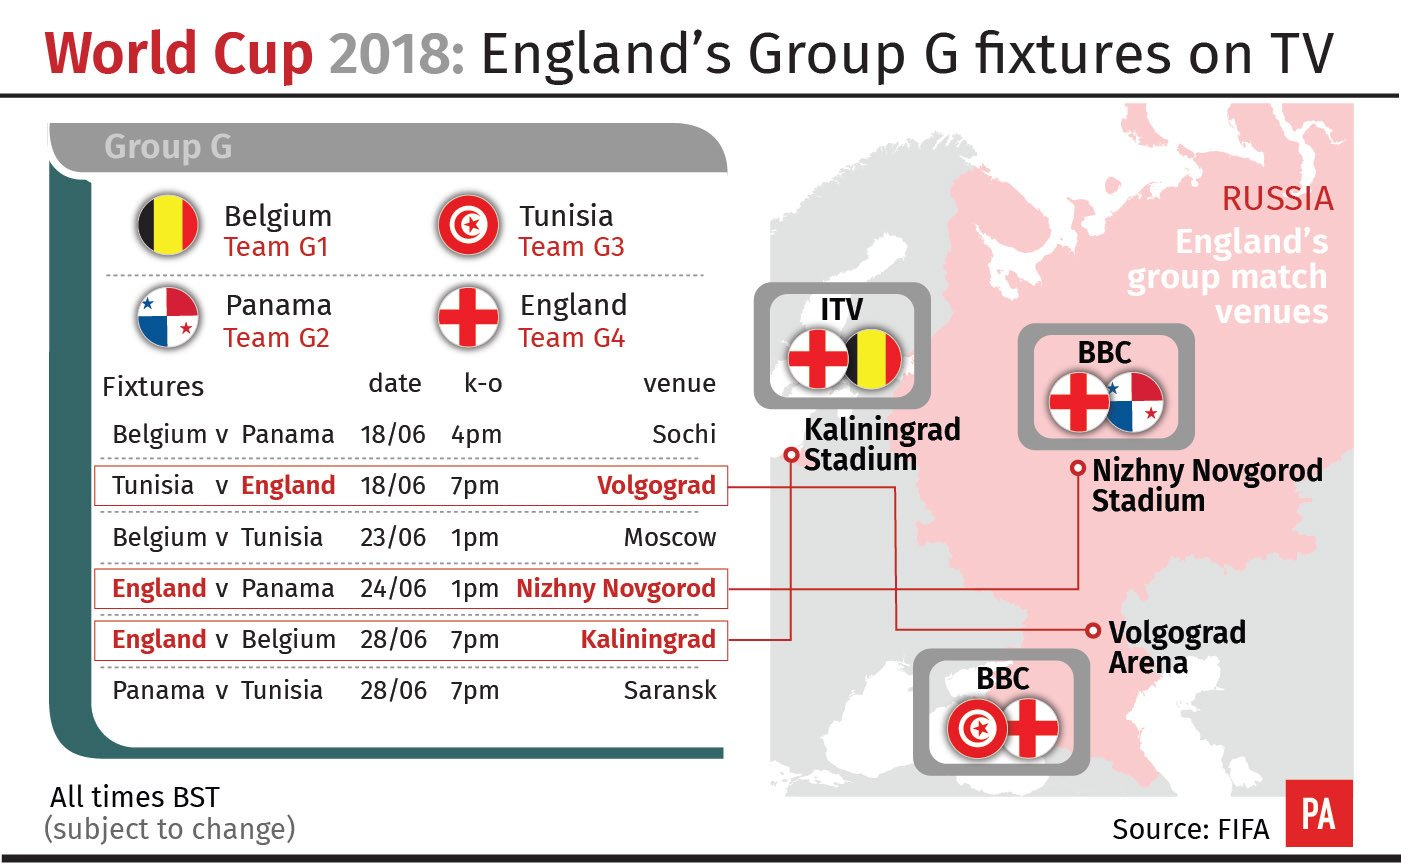 Details of TV coverage for @England's World Cup group games have been announced. https://t.co/Ld9drSIXgH